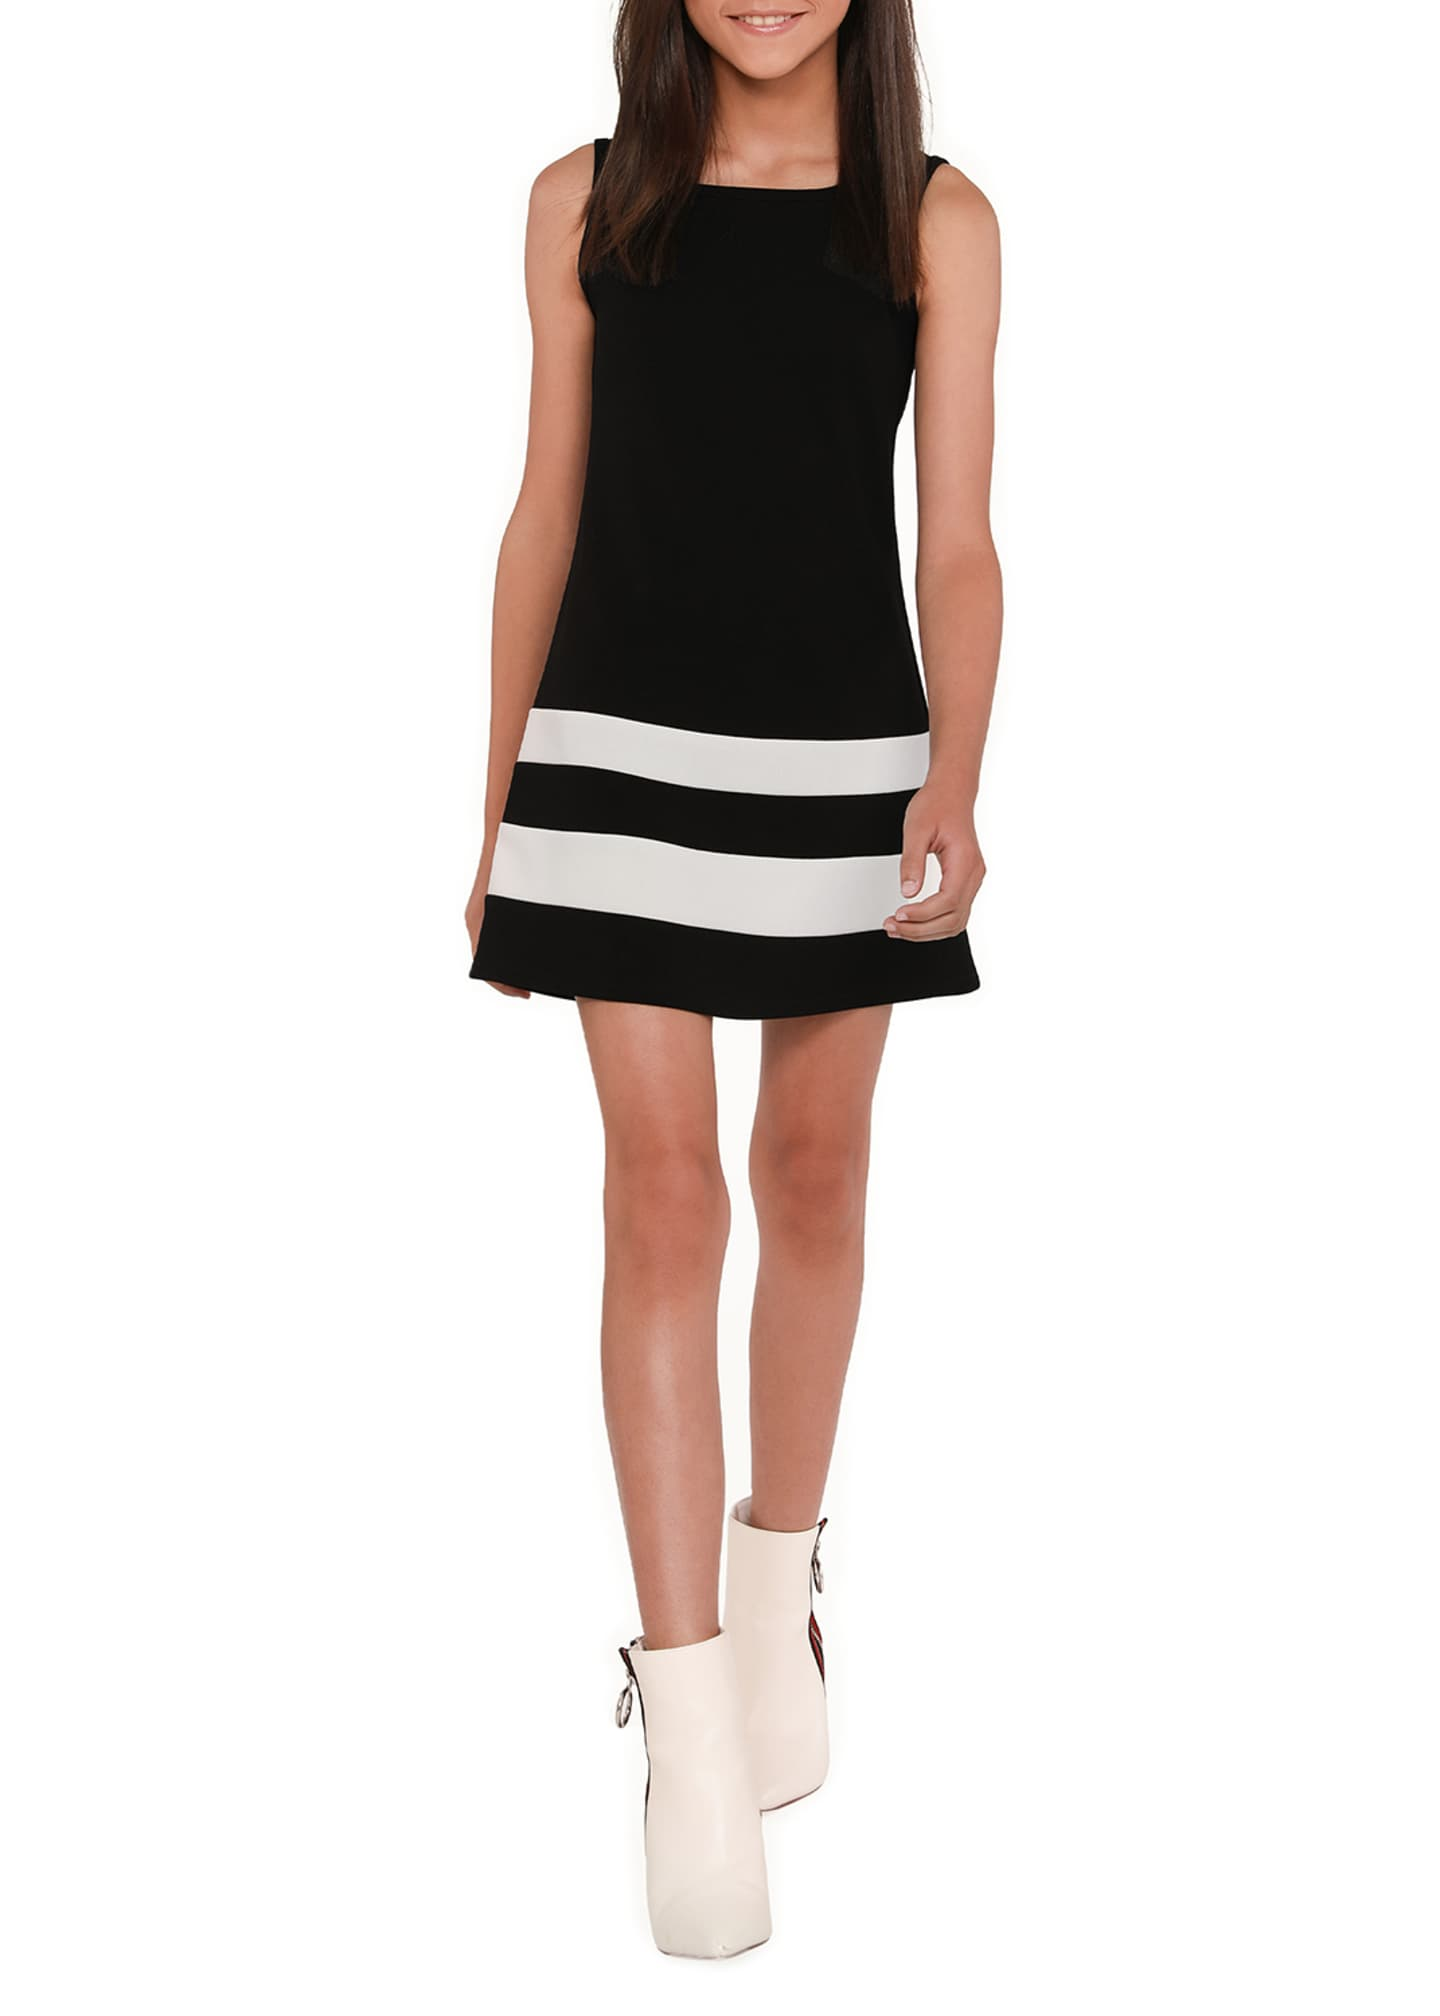 Image 1 of 2: The Austin Sleeveless Dress, Size S-XL